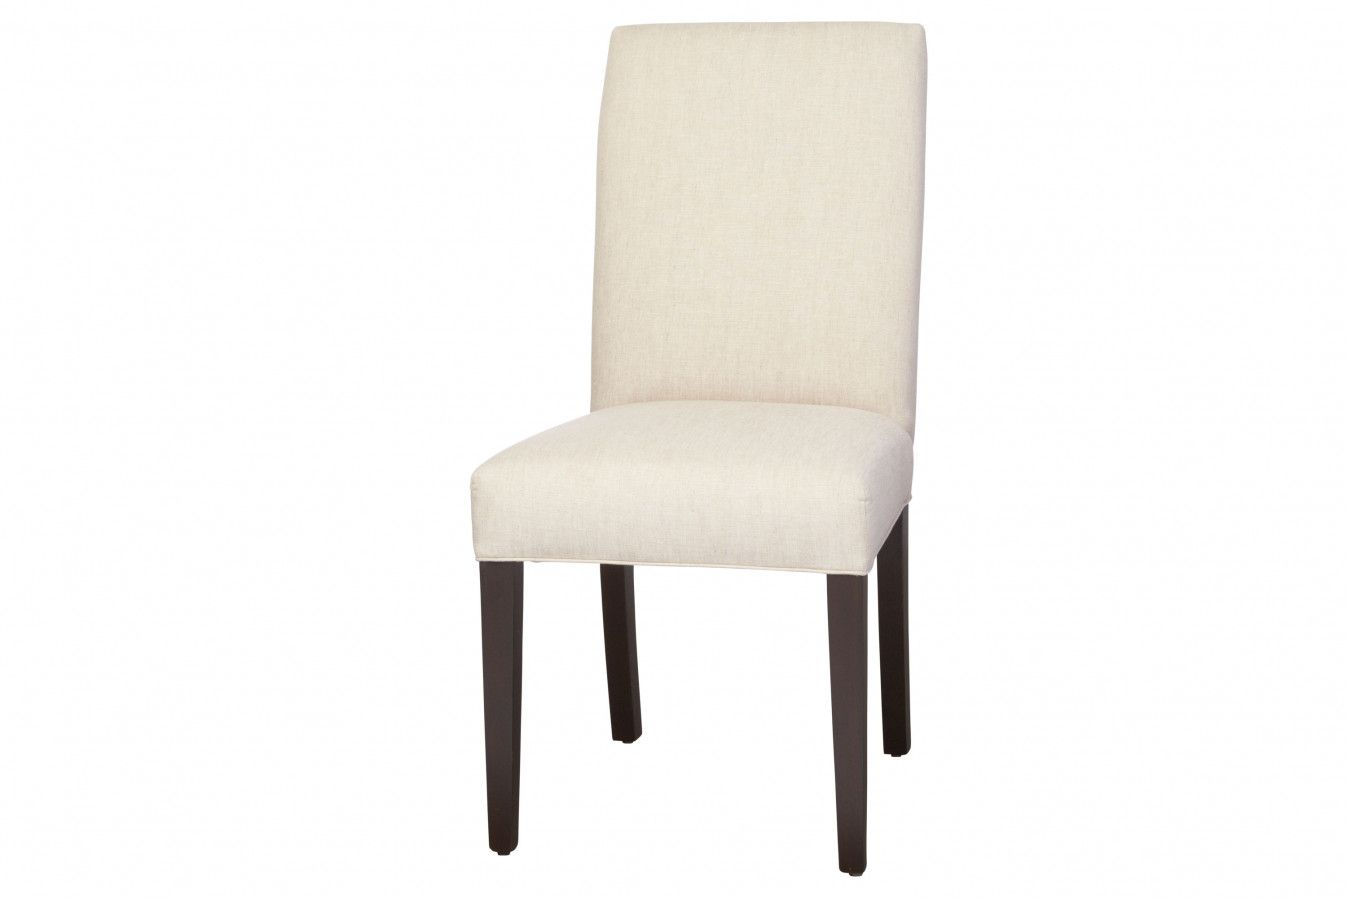 77+ Parson Dining Chair - Elite Modern Furniture Check more at http://www.ezeebreathe.com/parson-dining-chair/